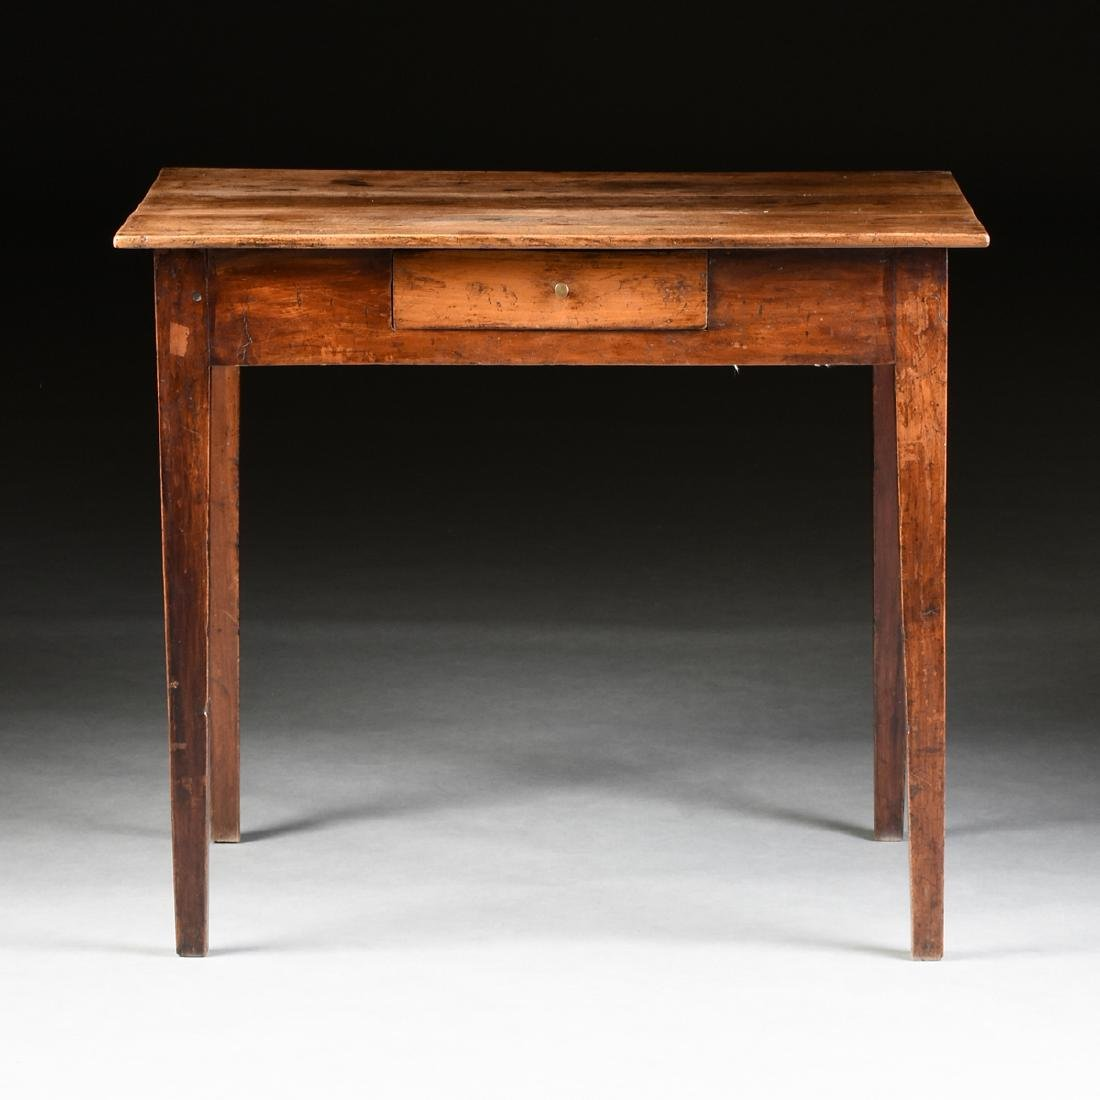 AN VERNACULAR FRUITWOOD KITCHEN TABLE, POSSIBLY - 2